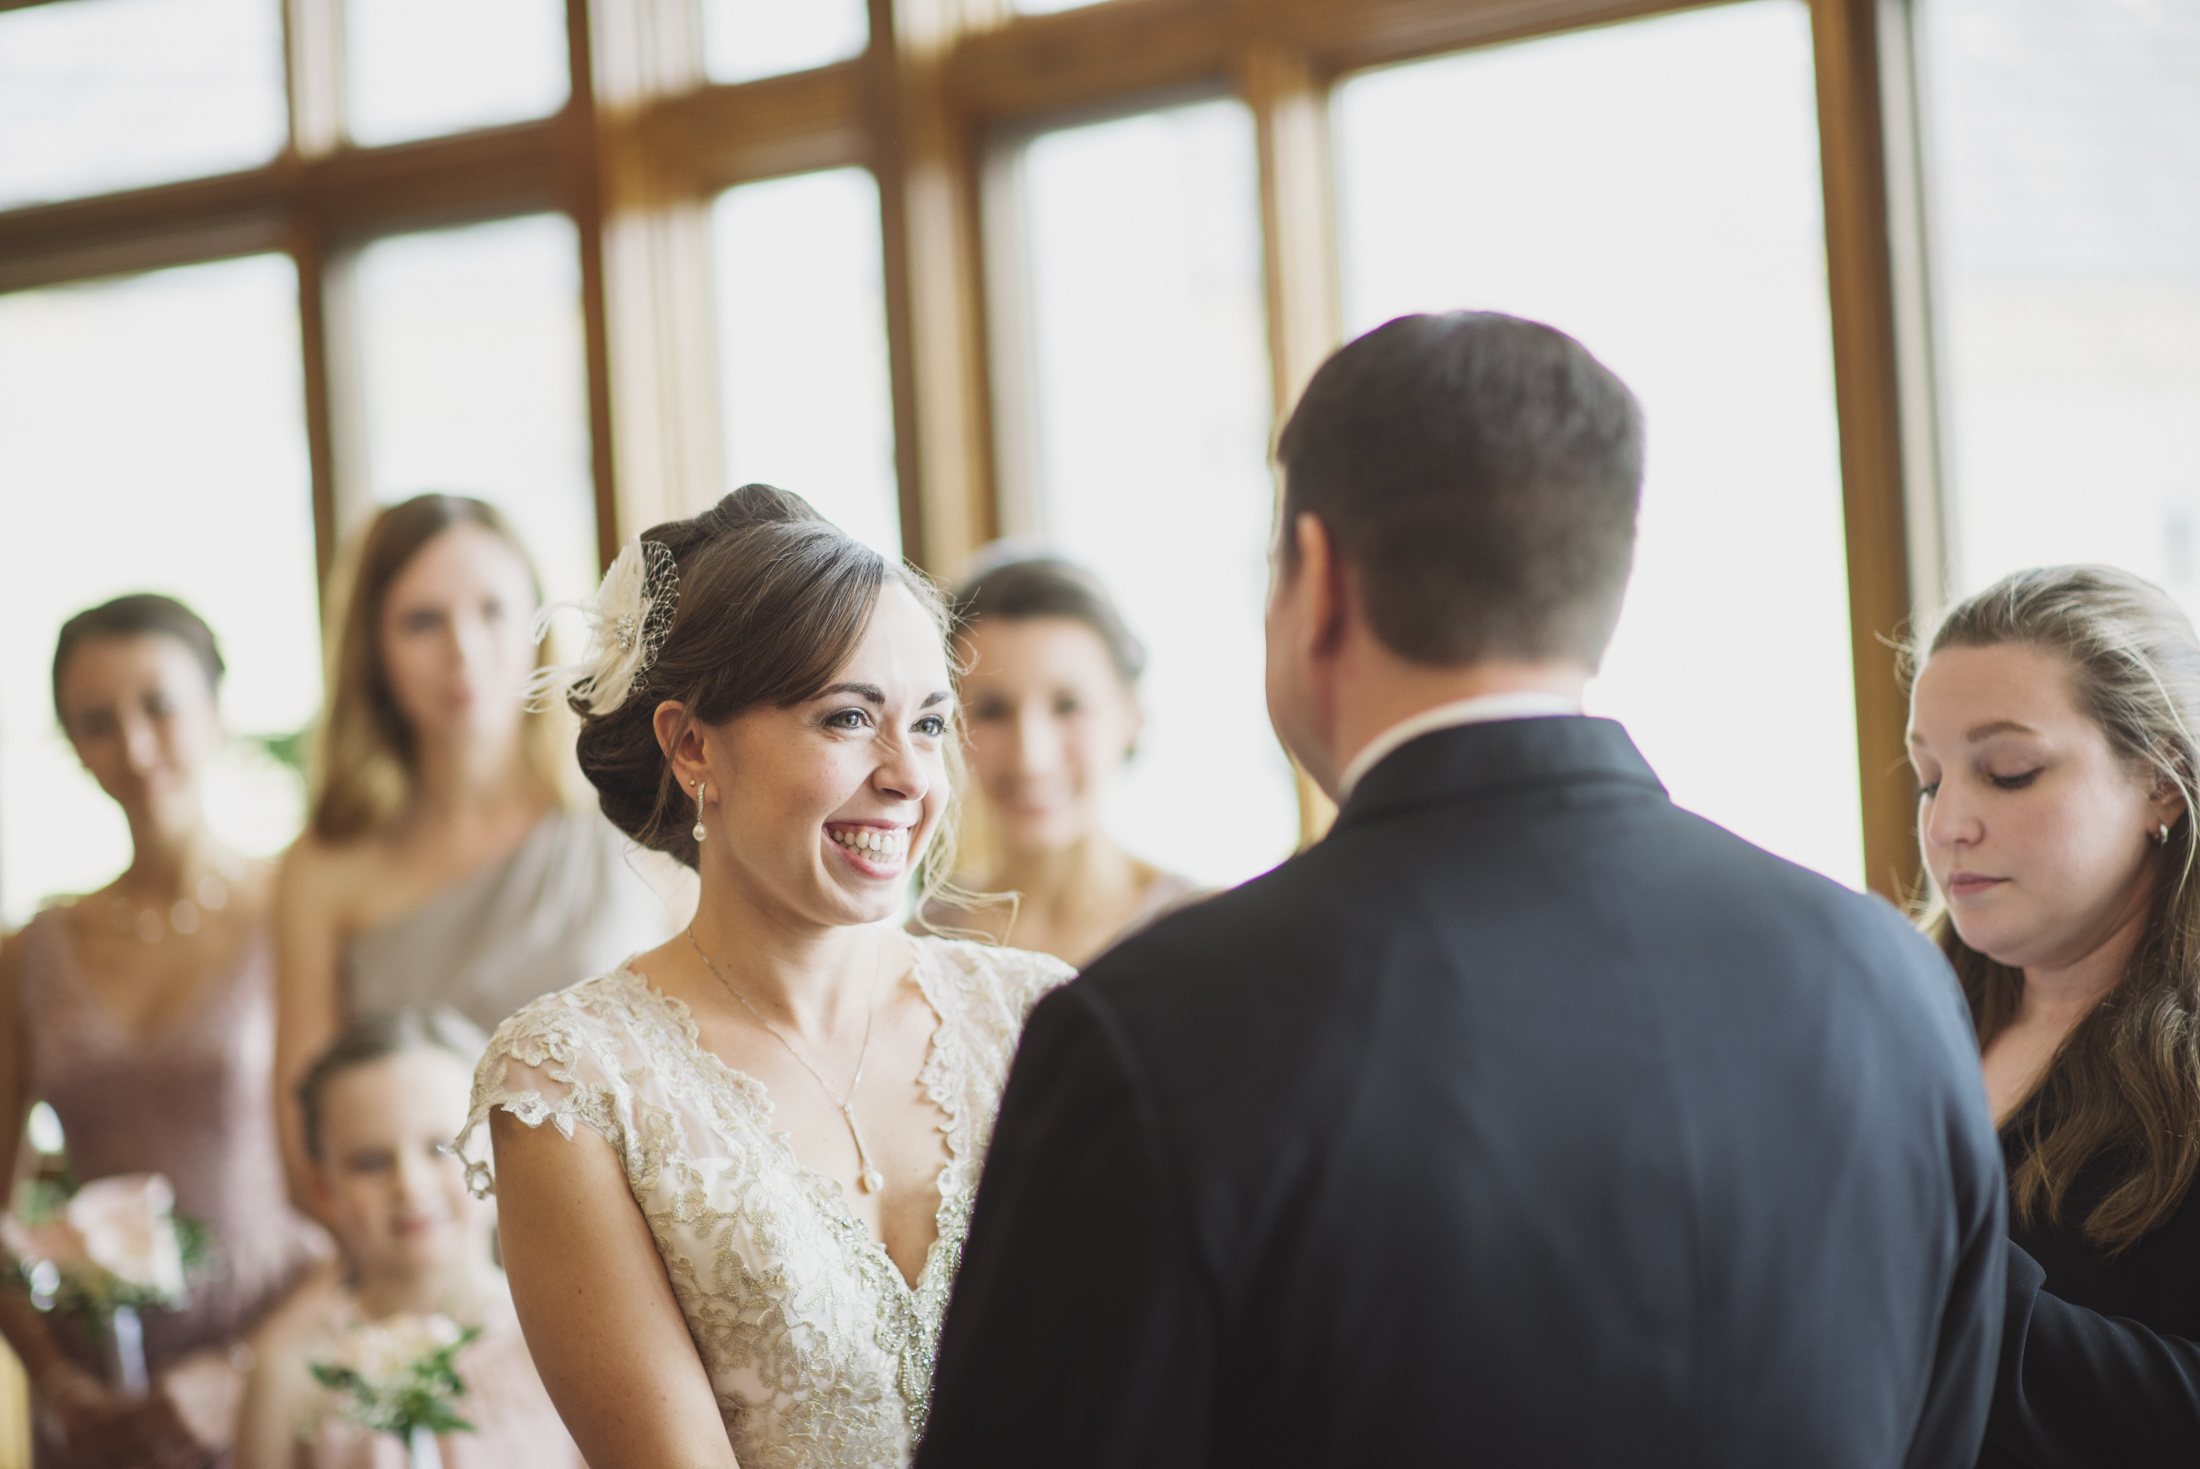 NH Wedding Photographer: Indoor ceremony at Bedford Village Inn